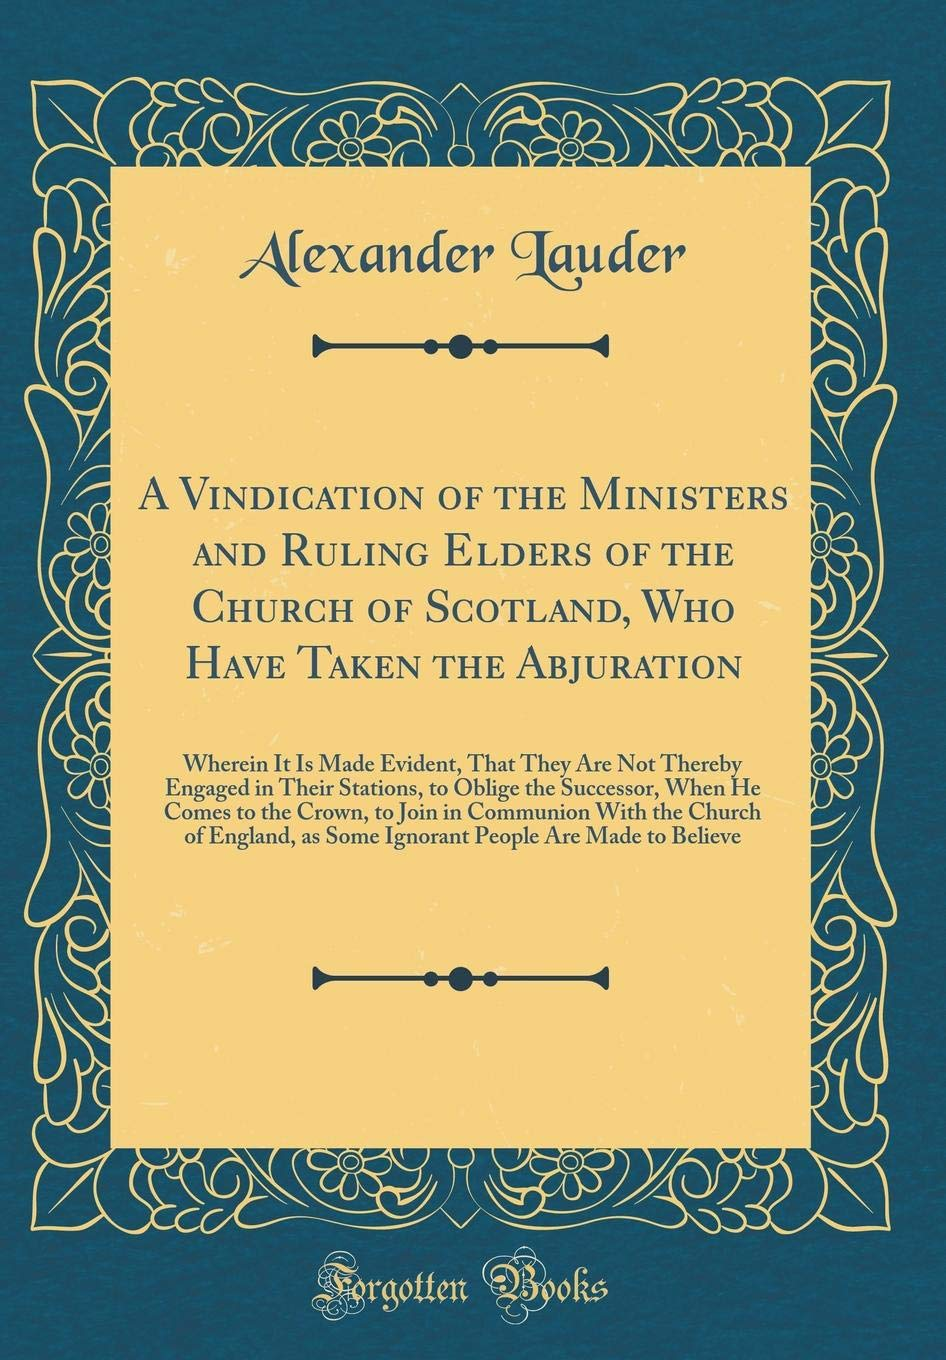 Download A Vindication of the Ministers and Ruling Elders of the Church of Scotland, Who Have Taken the Abjuration: Wherein It Is Made Evident, That They Are ... When He Comes to the Crown, to Join in Com pdf epub